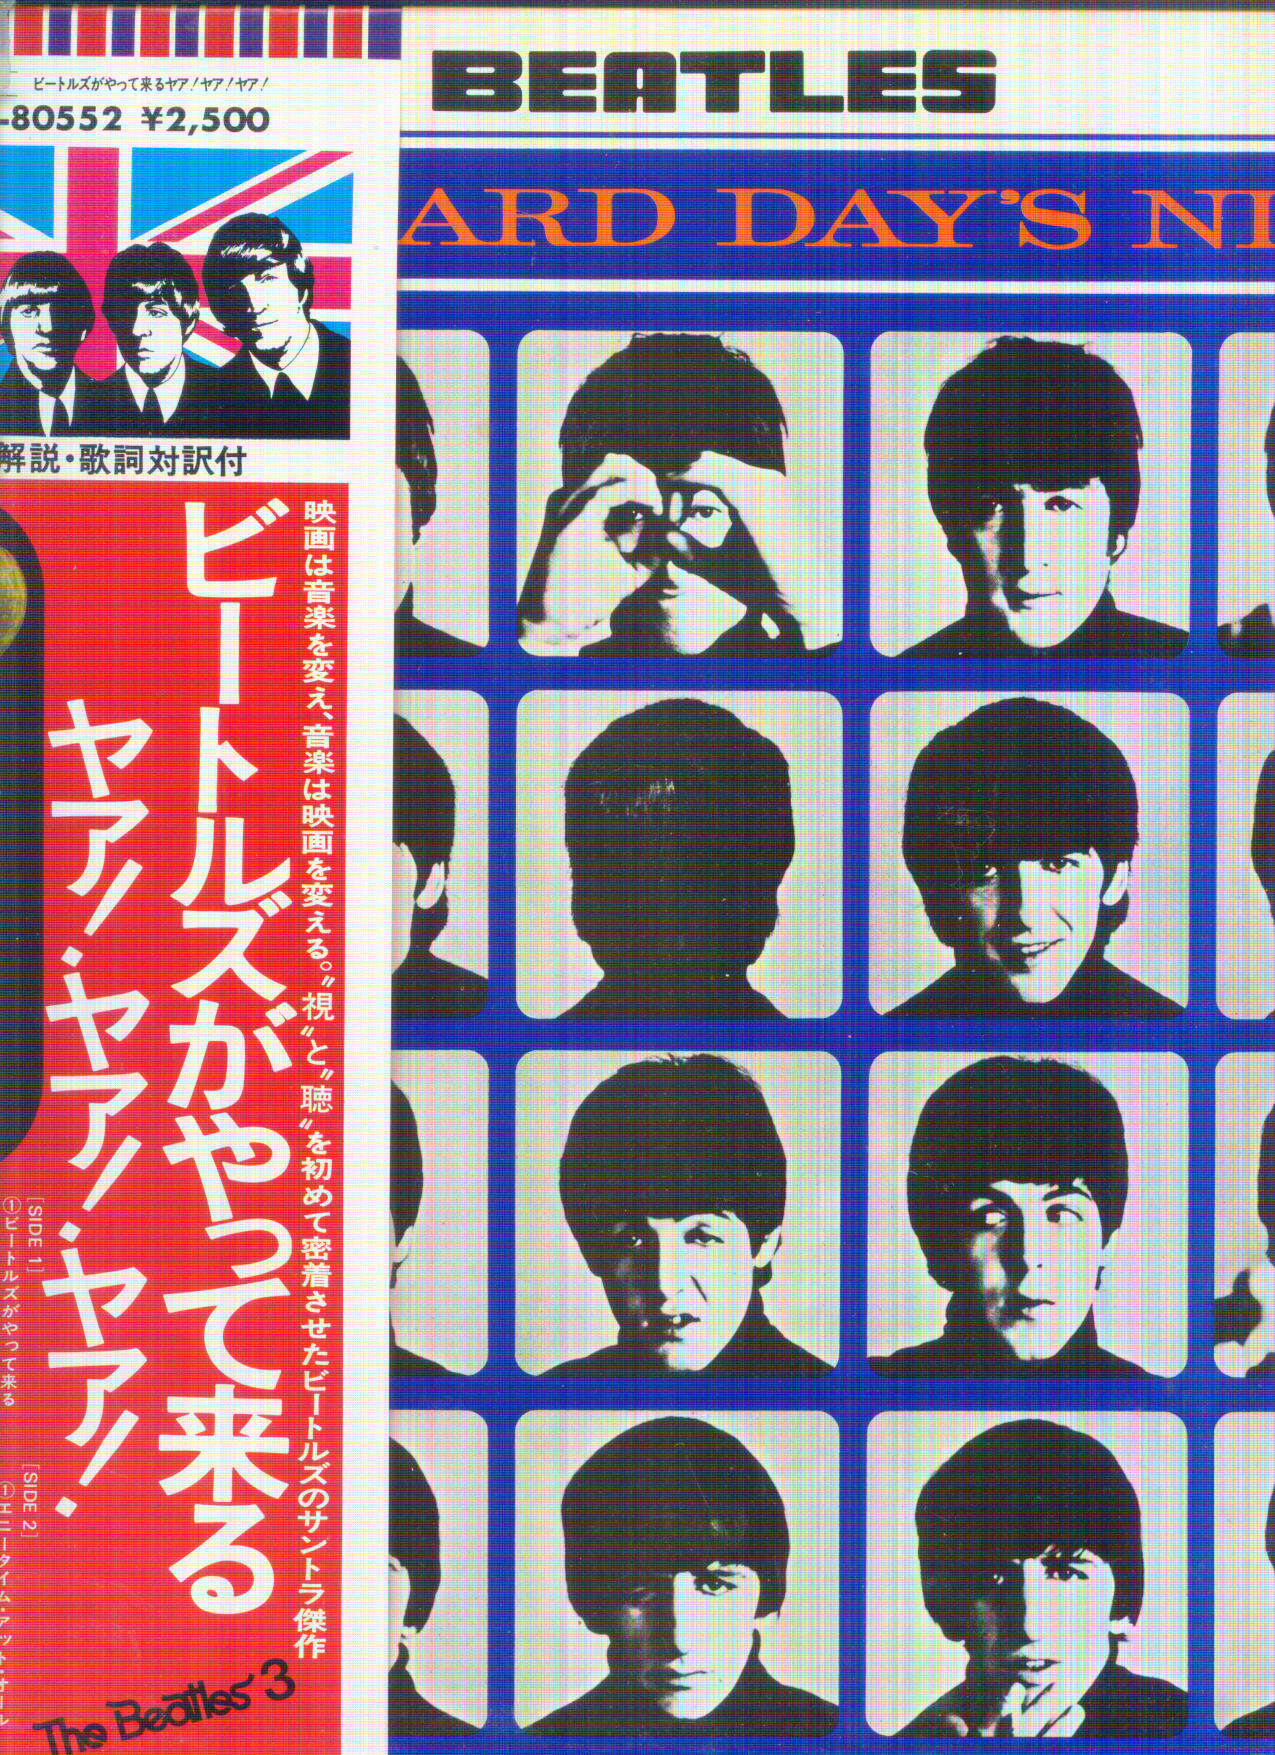 THE BEATLES HARD DAY'S NIGHT (JAPANESE PRESSING - VERSION 2 UK - STEREO)